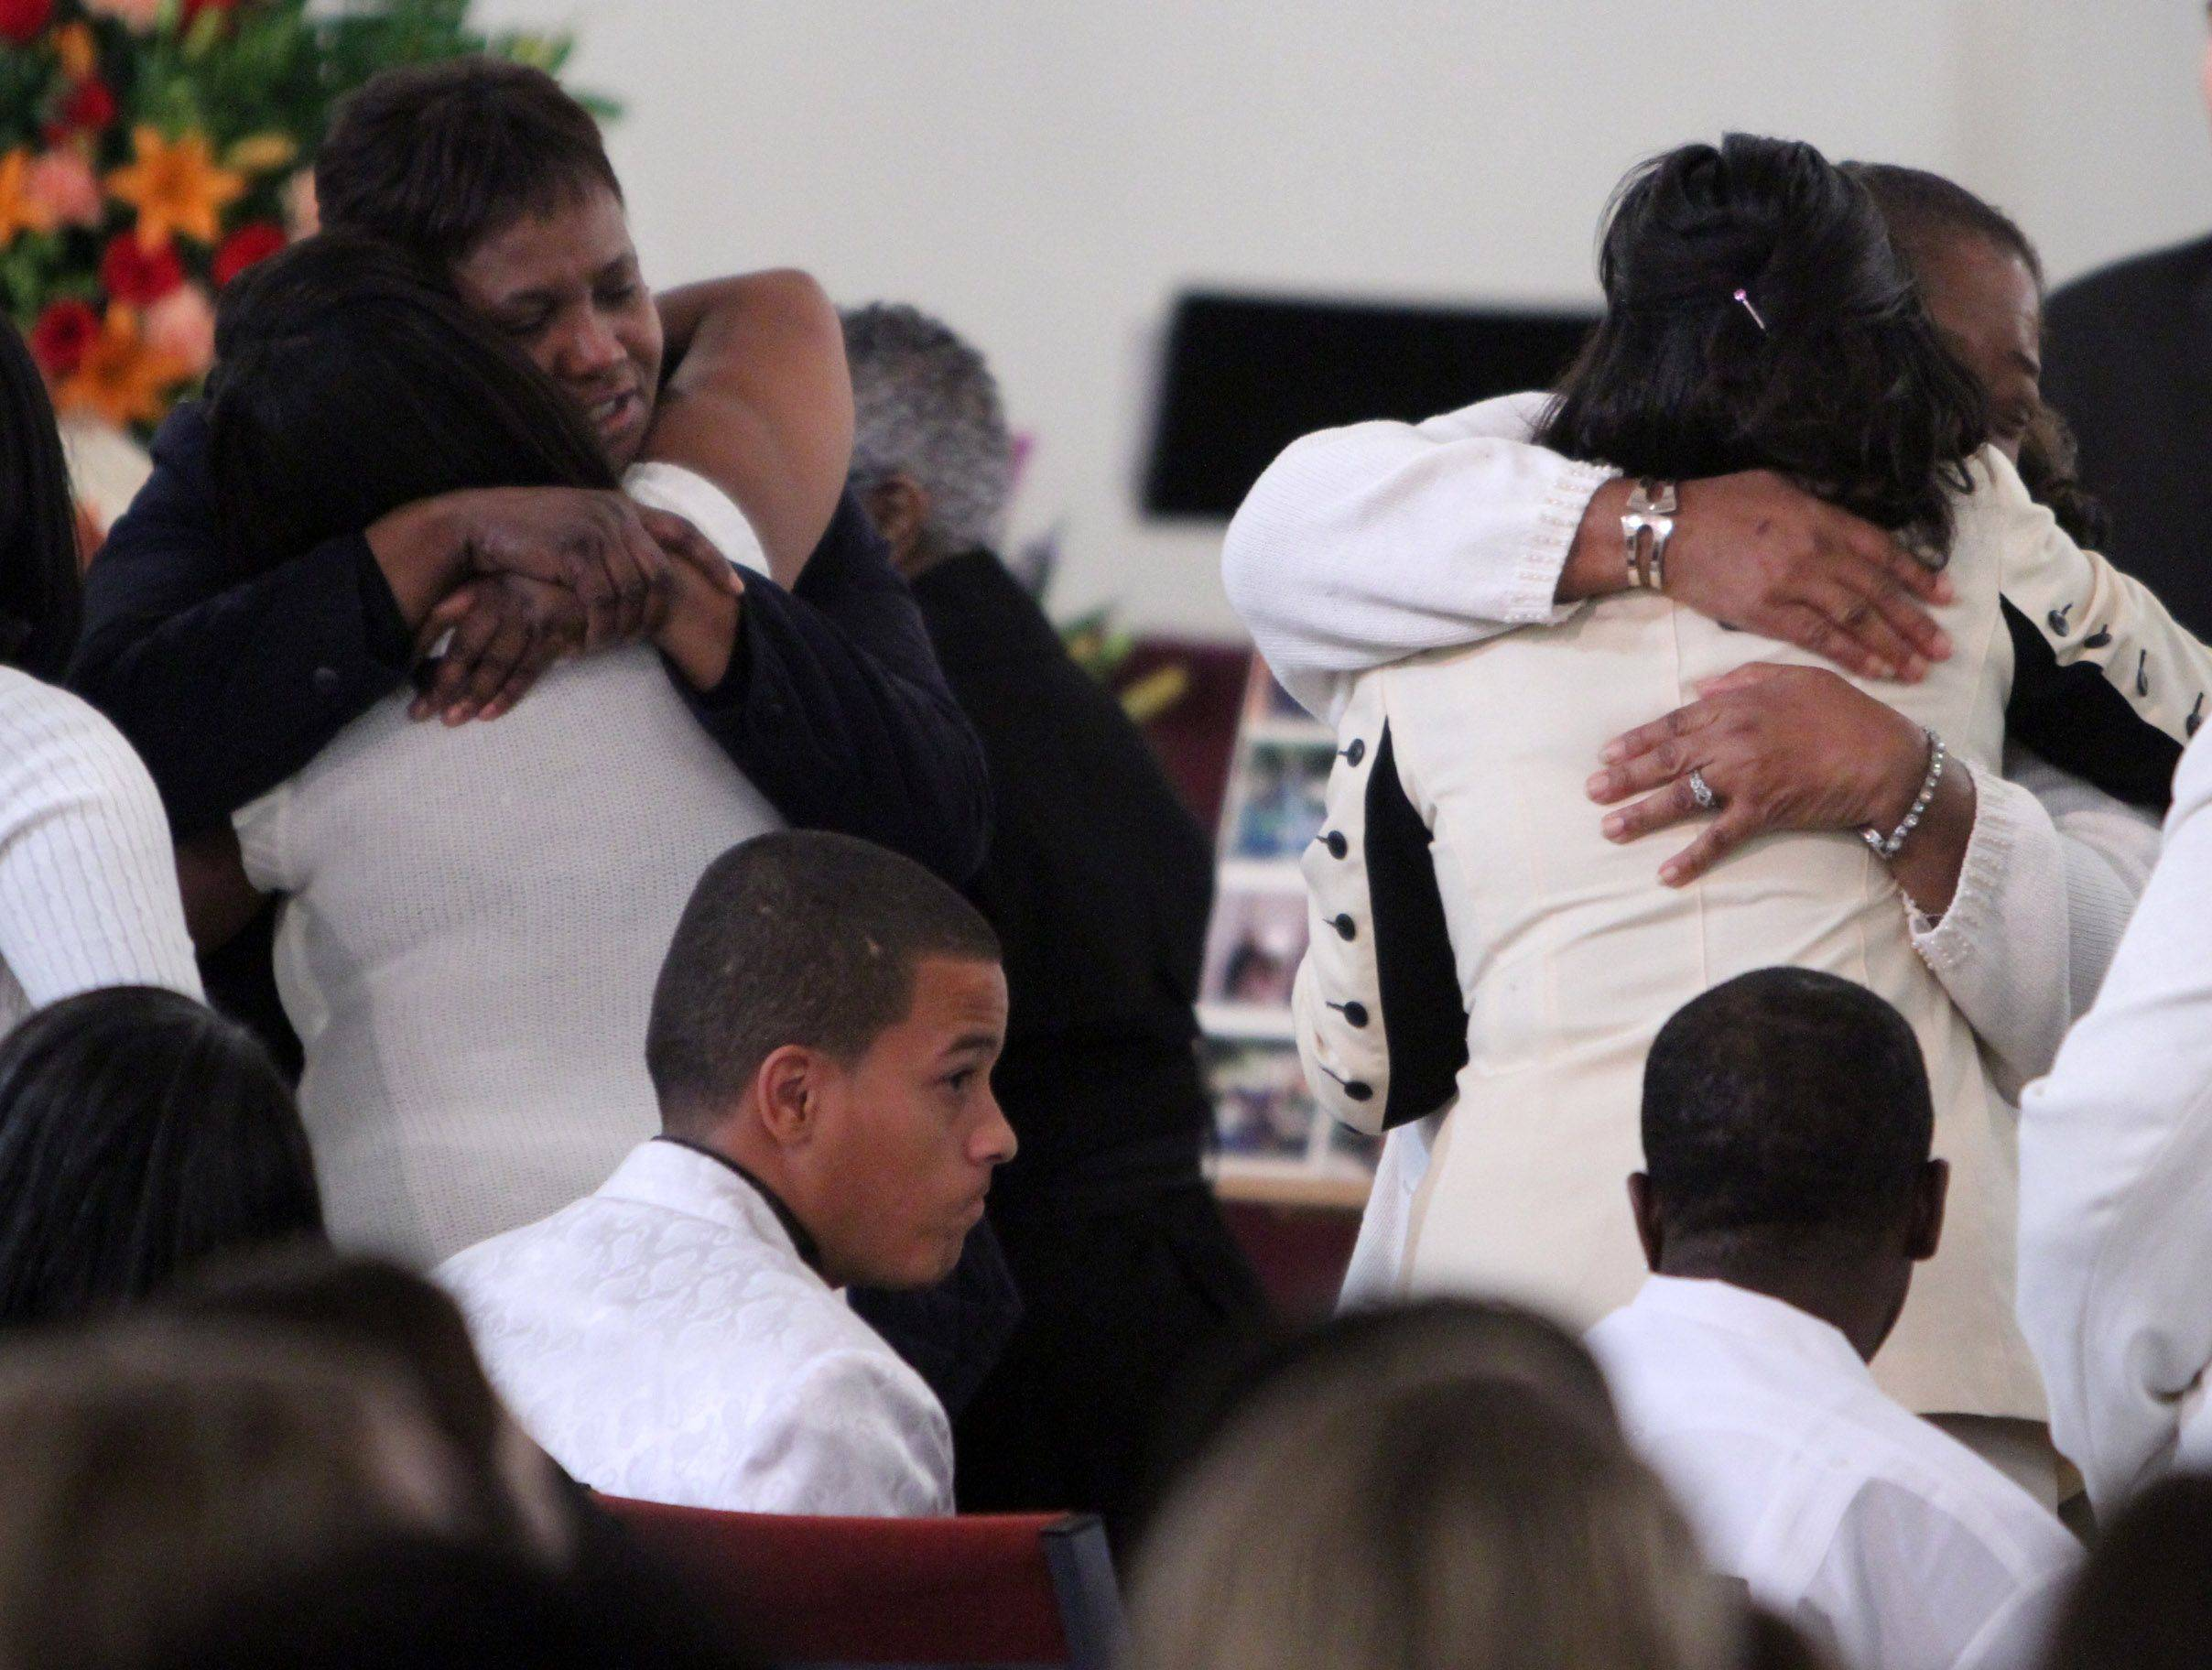 Loreene Taylor, far right, receives a hug after the funeral service for her son Choice Taylor at Good News Christian Center in Des Plaines Saturday.